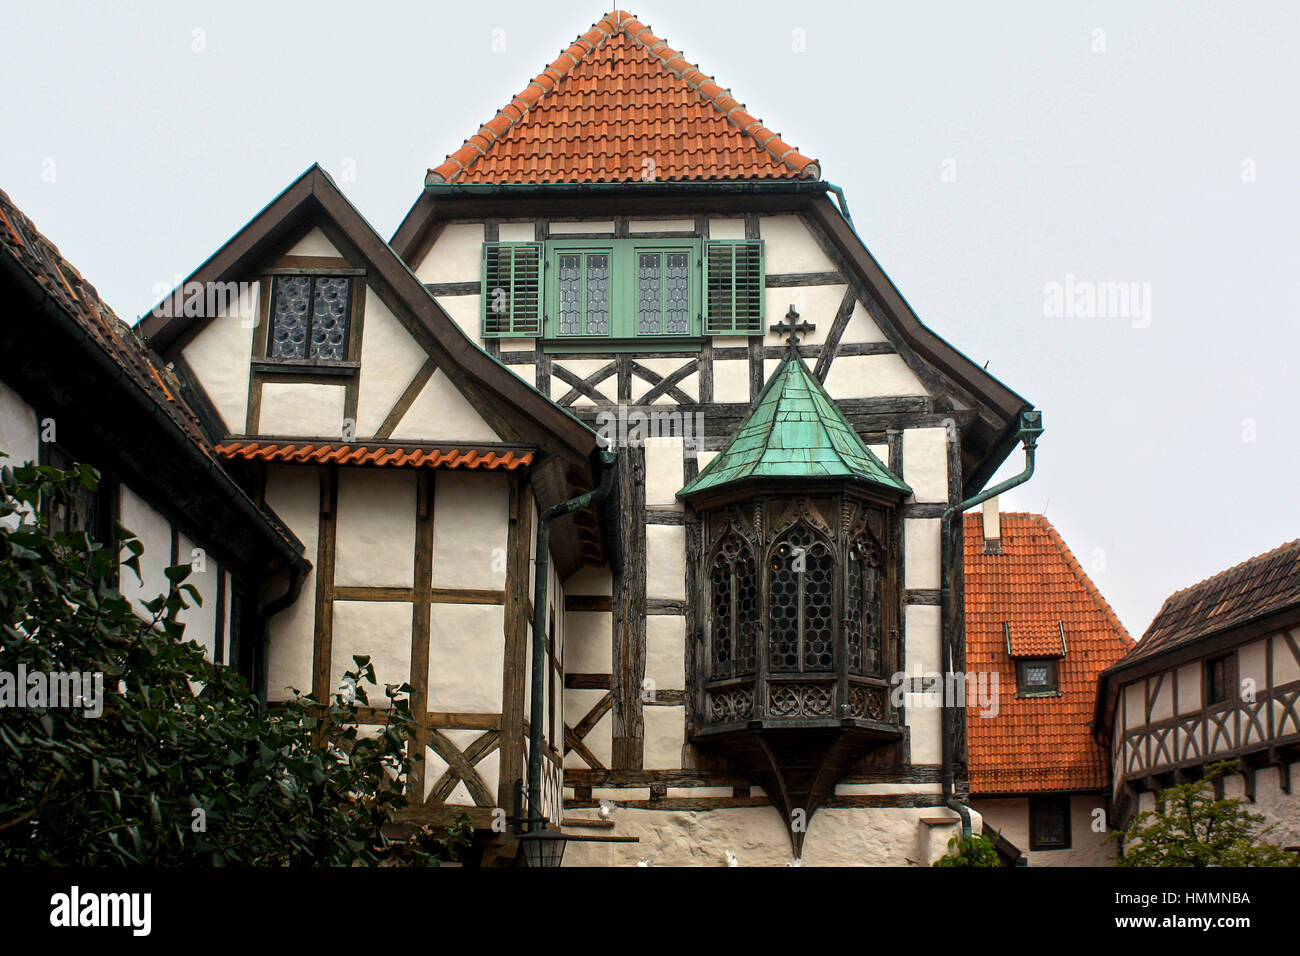 Gothic fachwerk building in the Wartburg castle, Germany - Stock Image